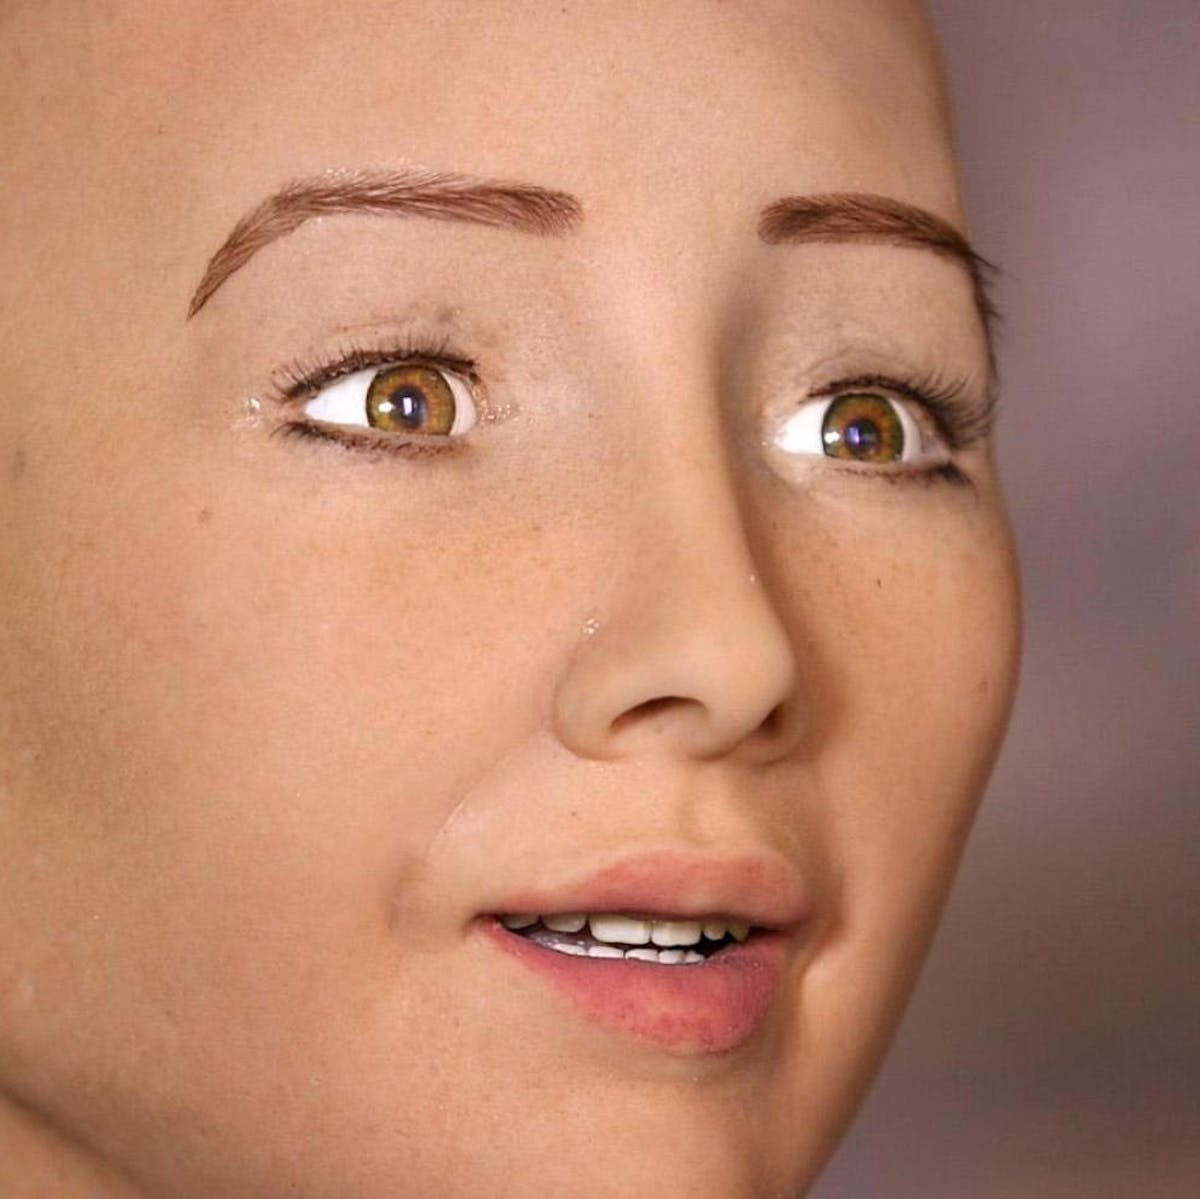 This creepy robot skin responds to being tickled, slapped, or caressed